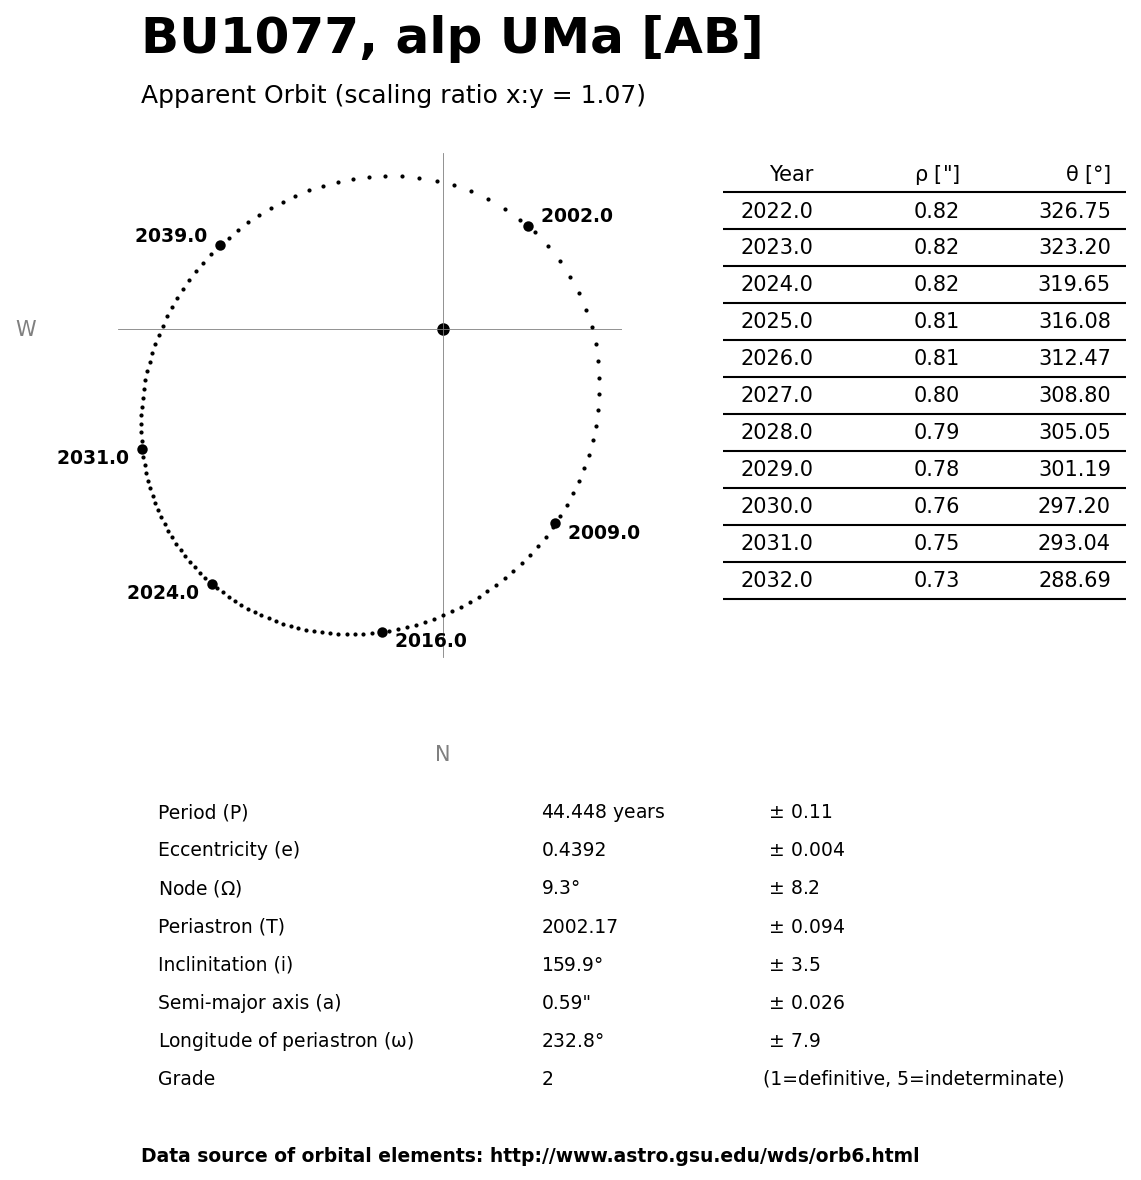 ../images/binary-star-orbits/BU1077-AB-orbit.jpg